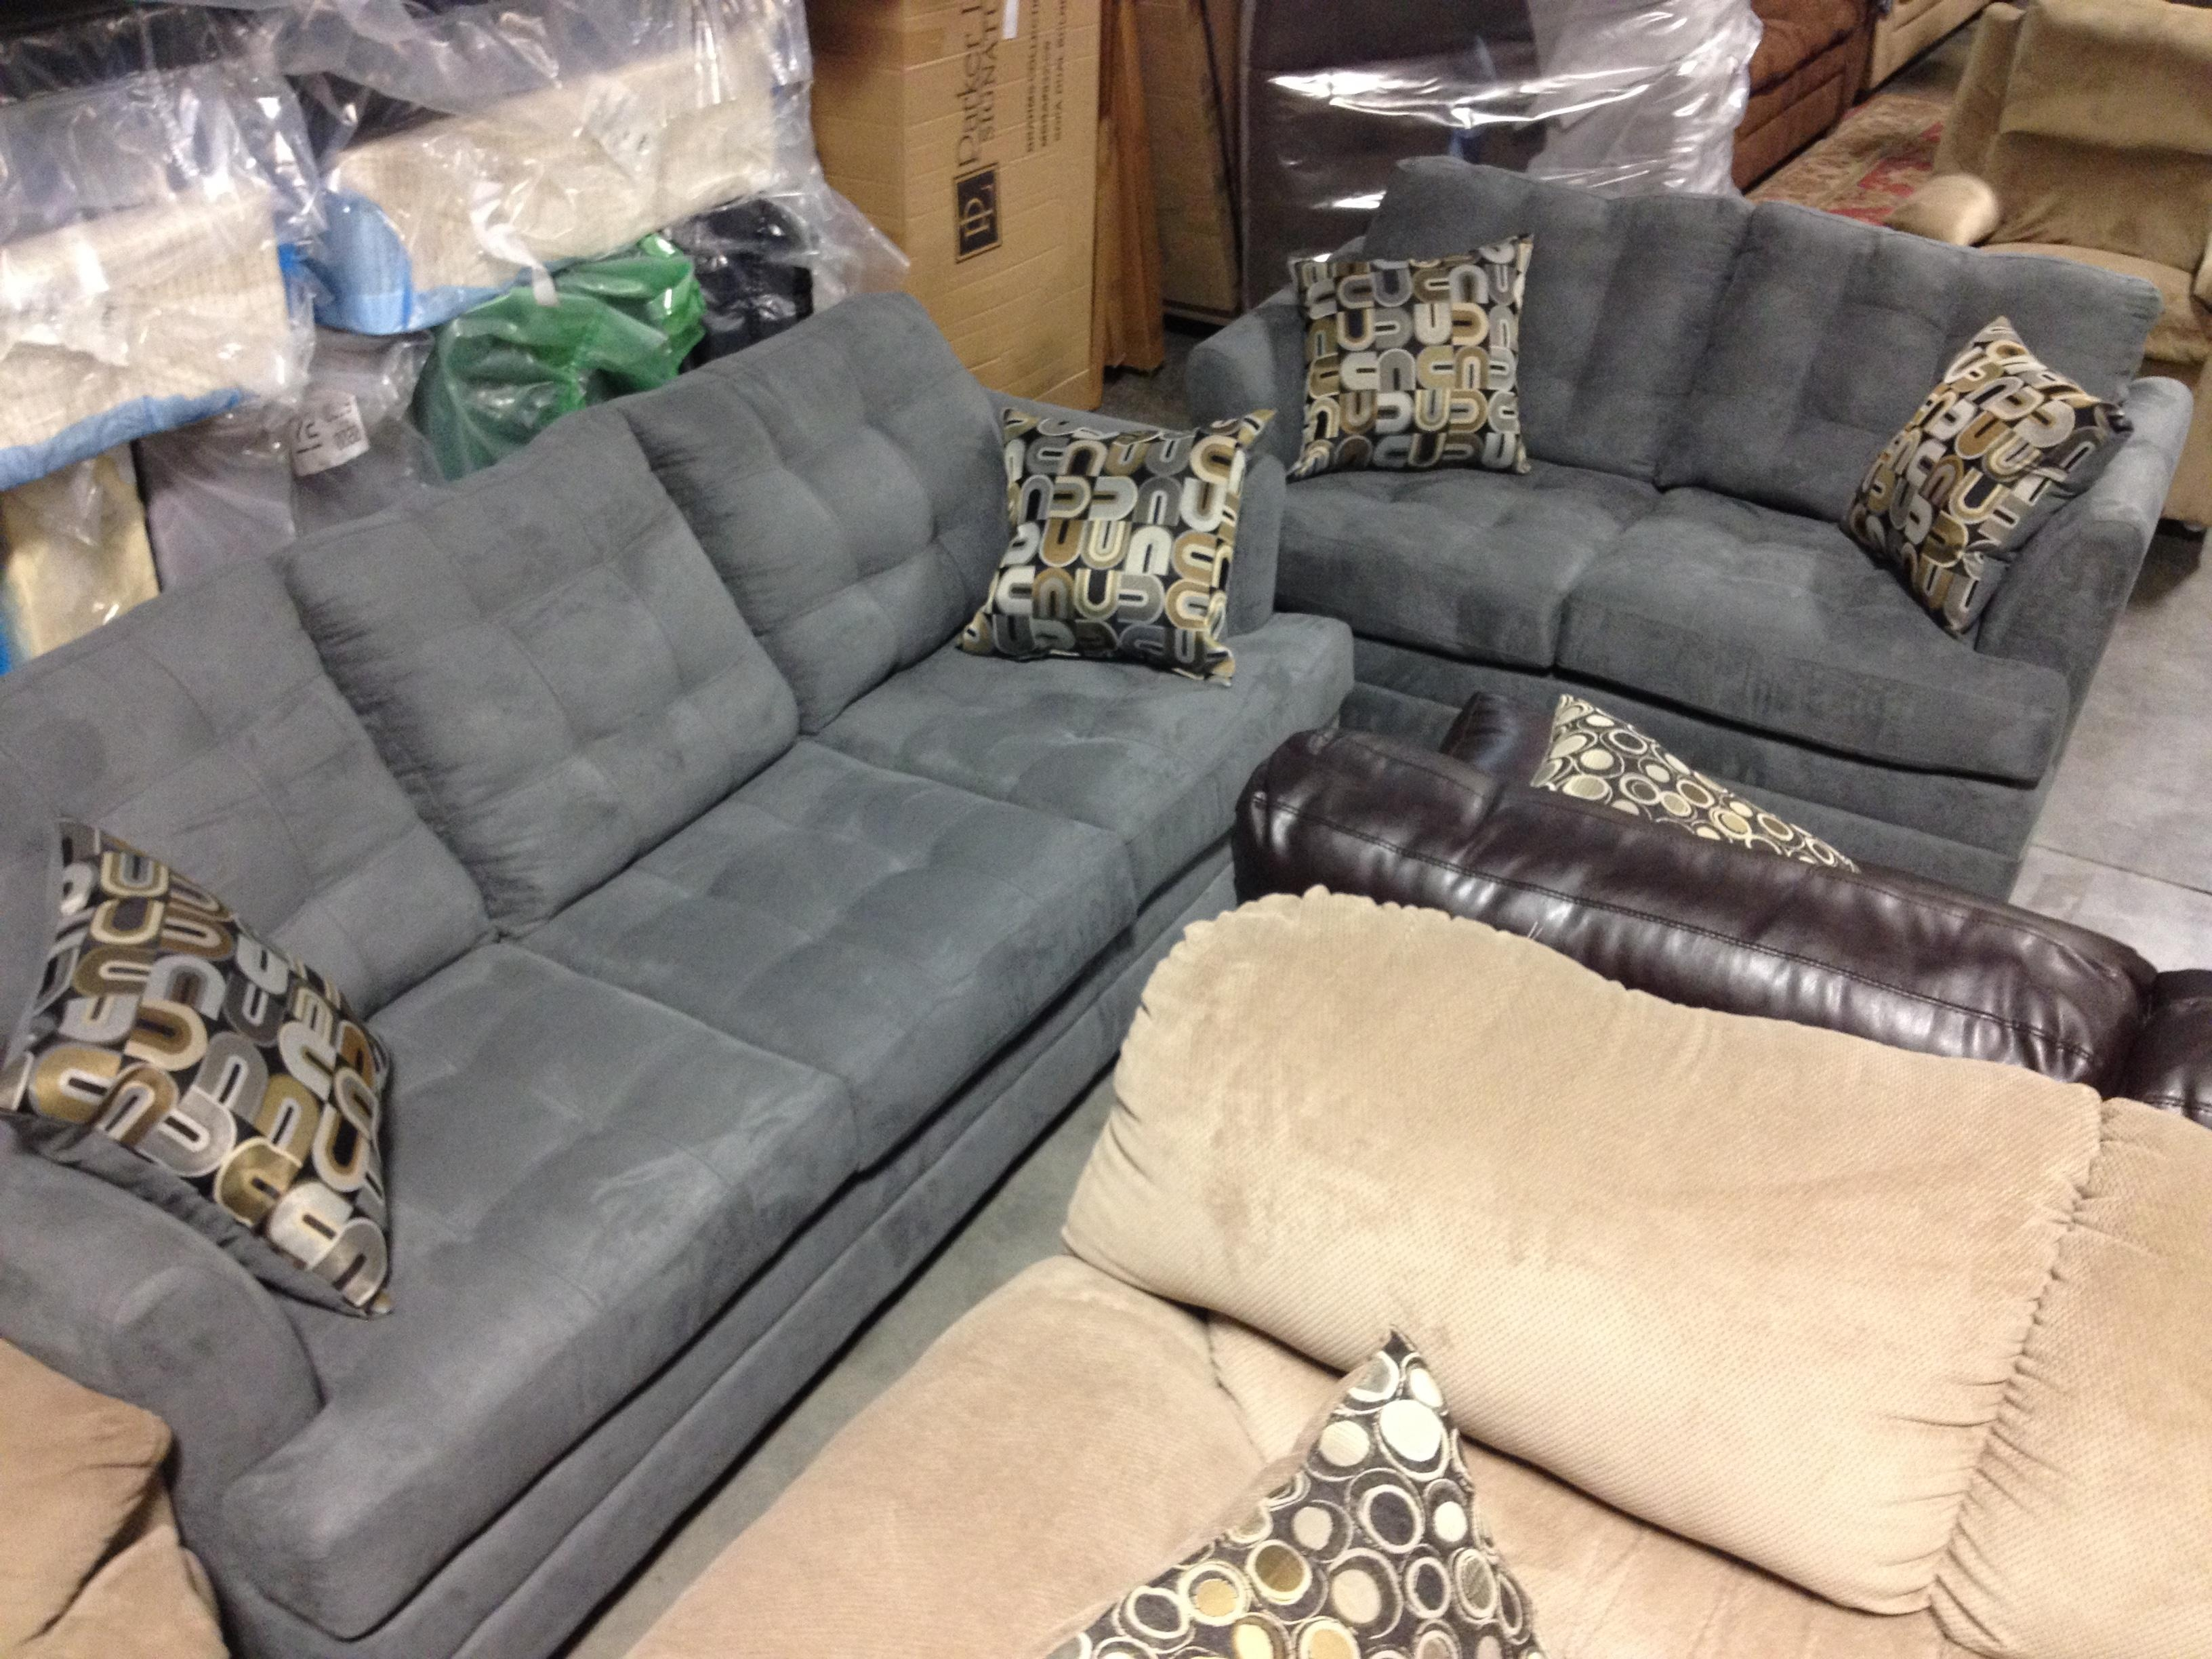 April 2017 – Chico Furniture Direct 4 U Intended For Simmons Microfiber Sofas (Image 1 of 20)